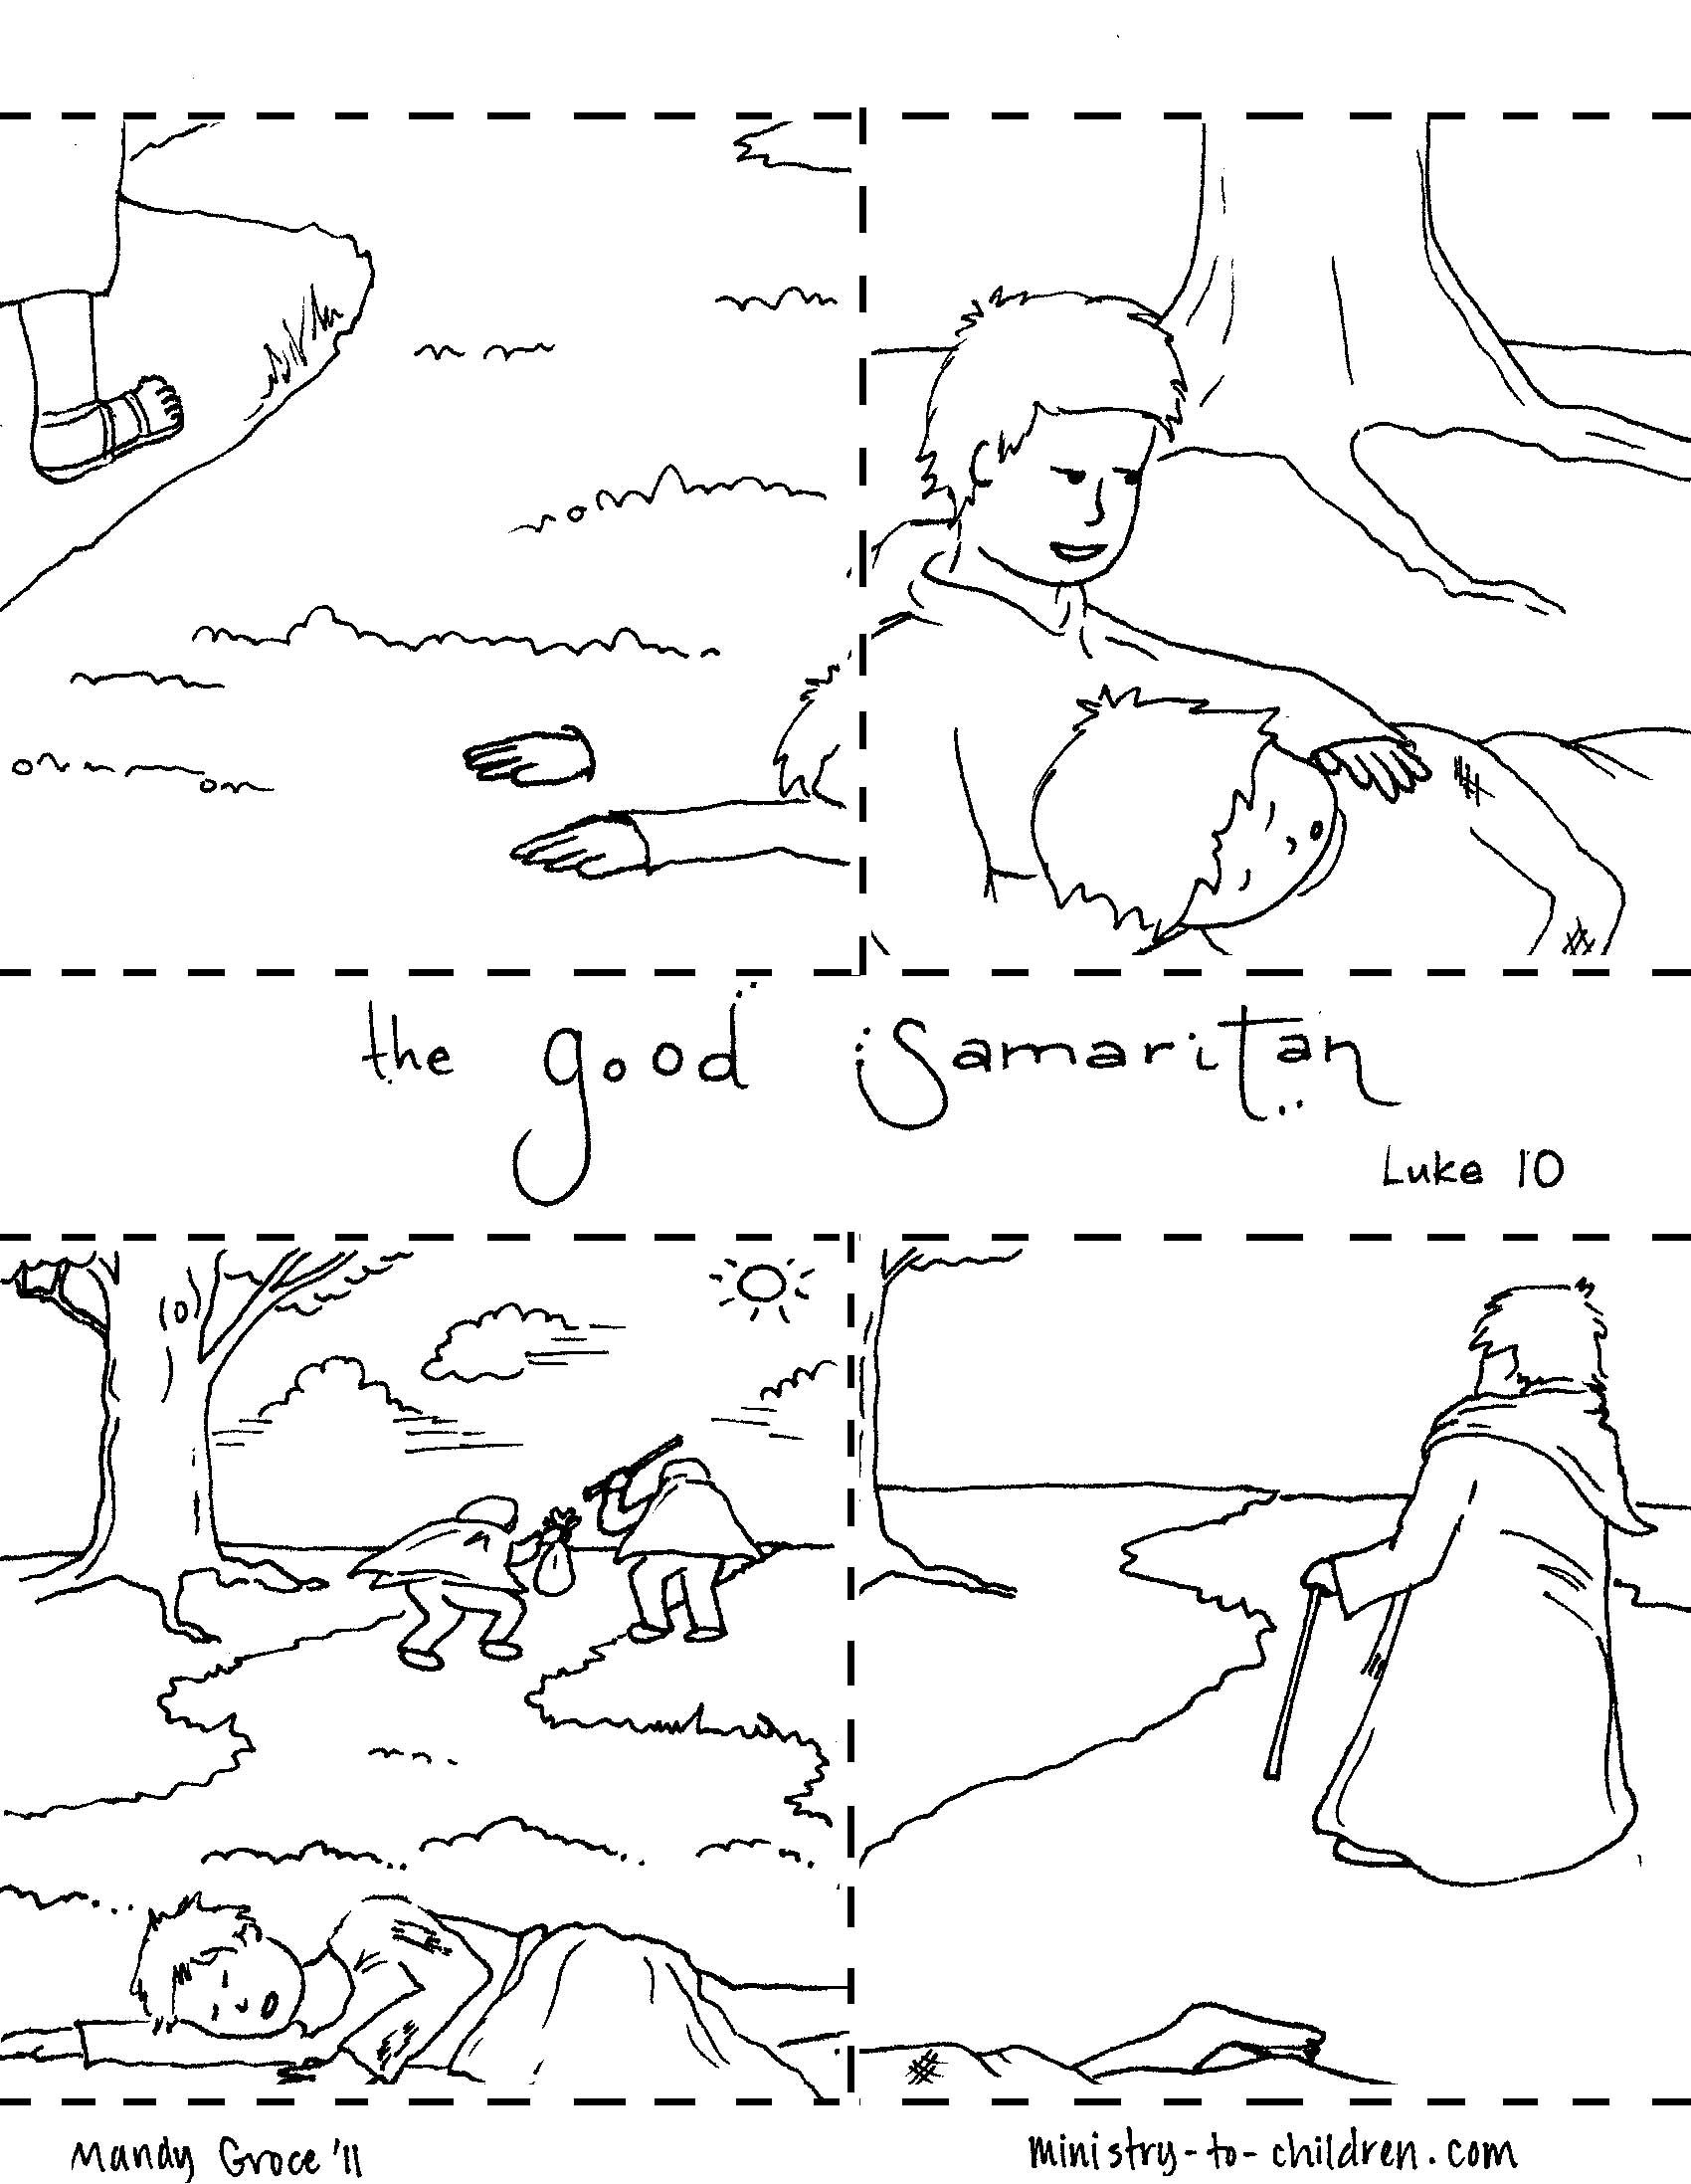 The Good Samaritan 1 Jpg 1 700 2 195 Pixeles Good Samaritan